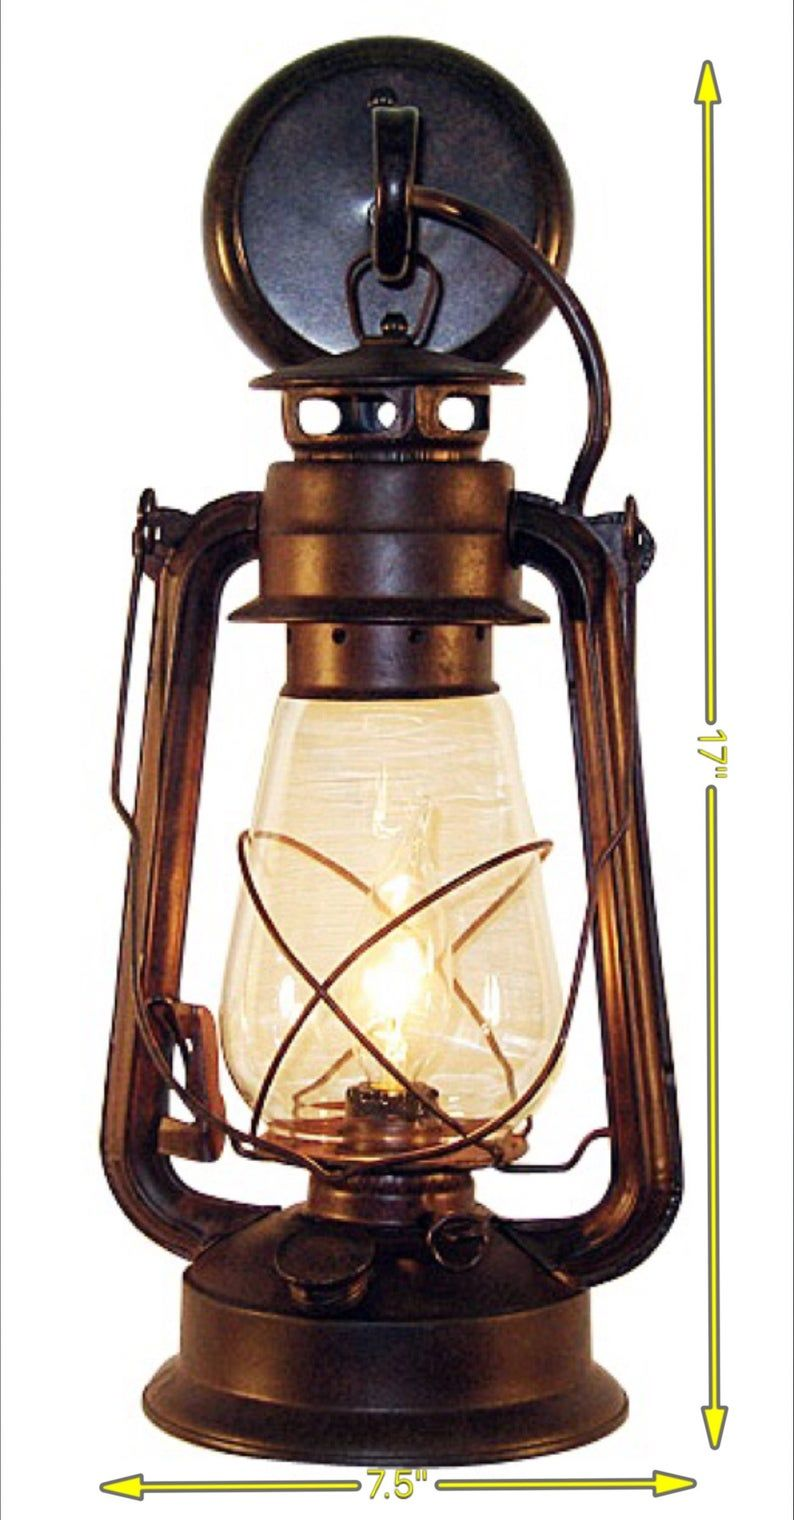 Hanging Lantern Electric Wall Sconce Oil Lantern Large Rustic By Muskoka Lifestyle Products With Images Rustic Lanterns Wall Mount Lantern Wall Mounted Light